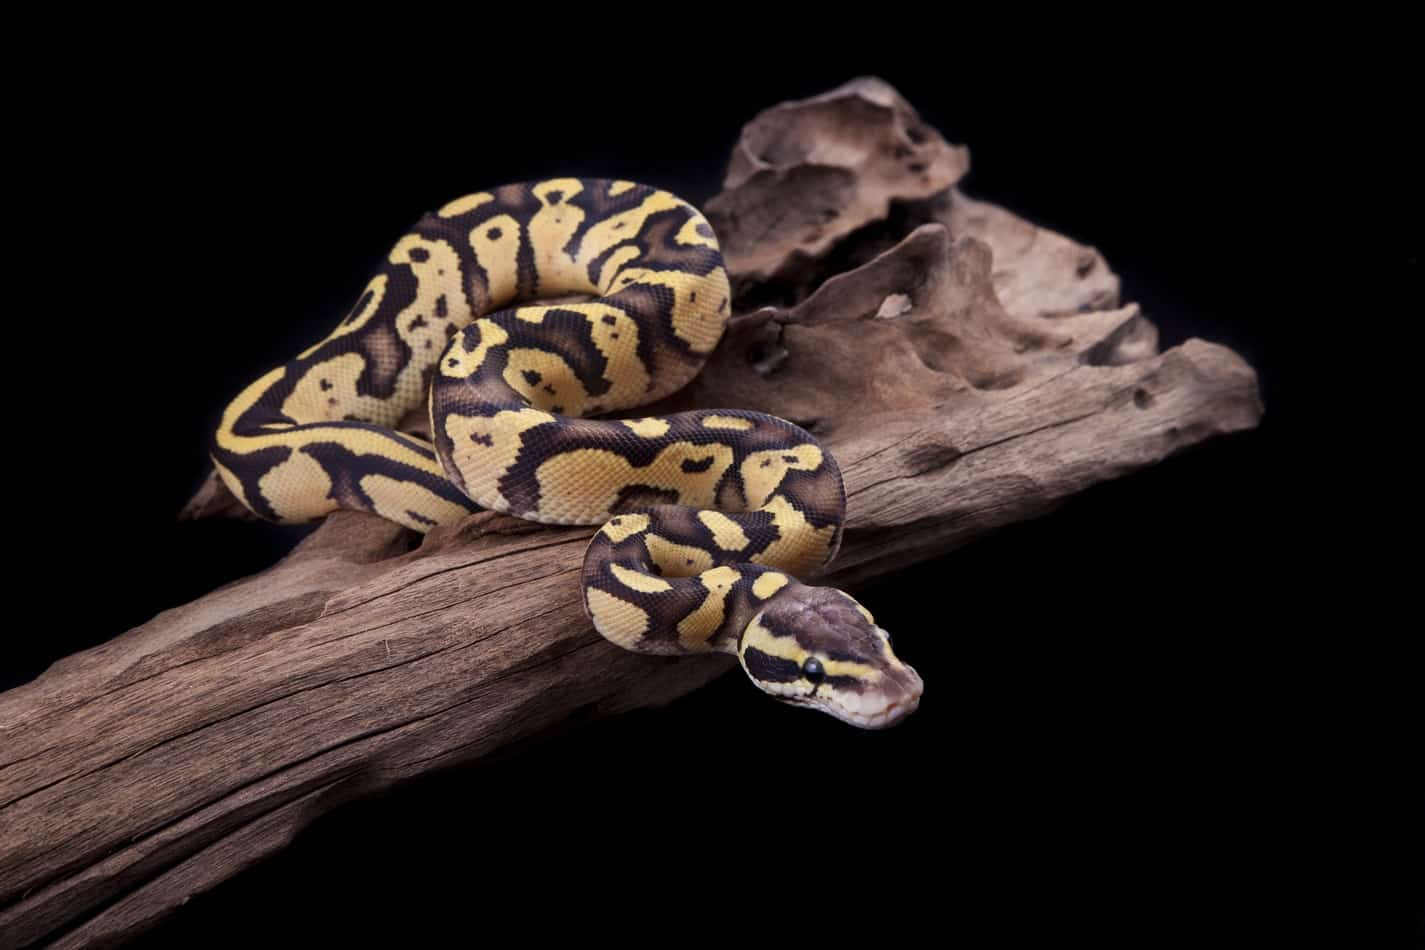 Buyer's Guide: Bedding for Ball Pythons